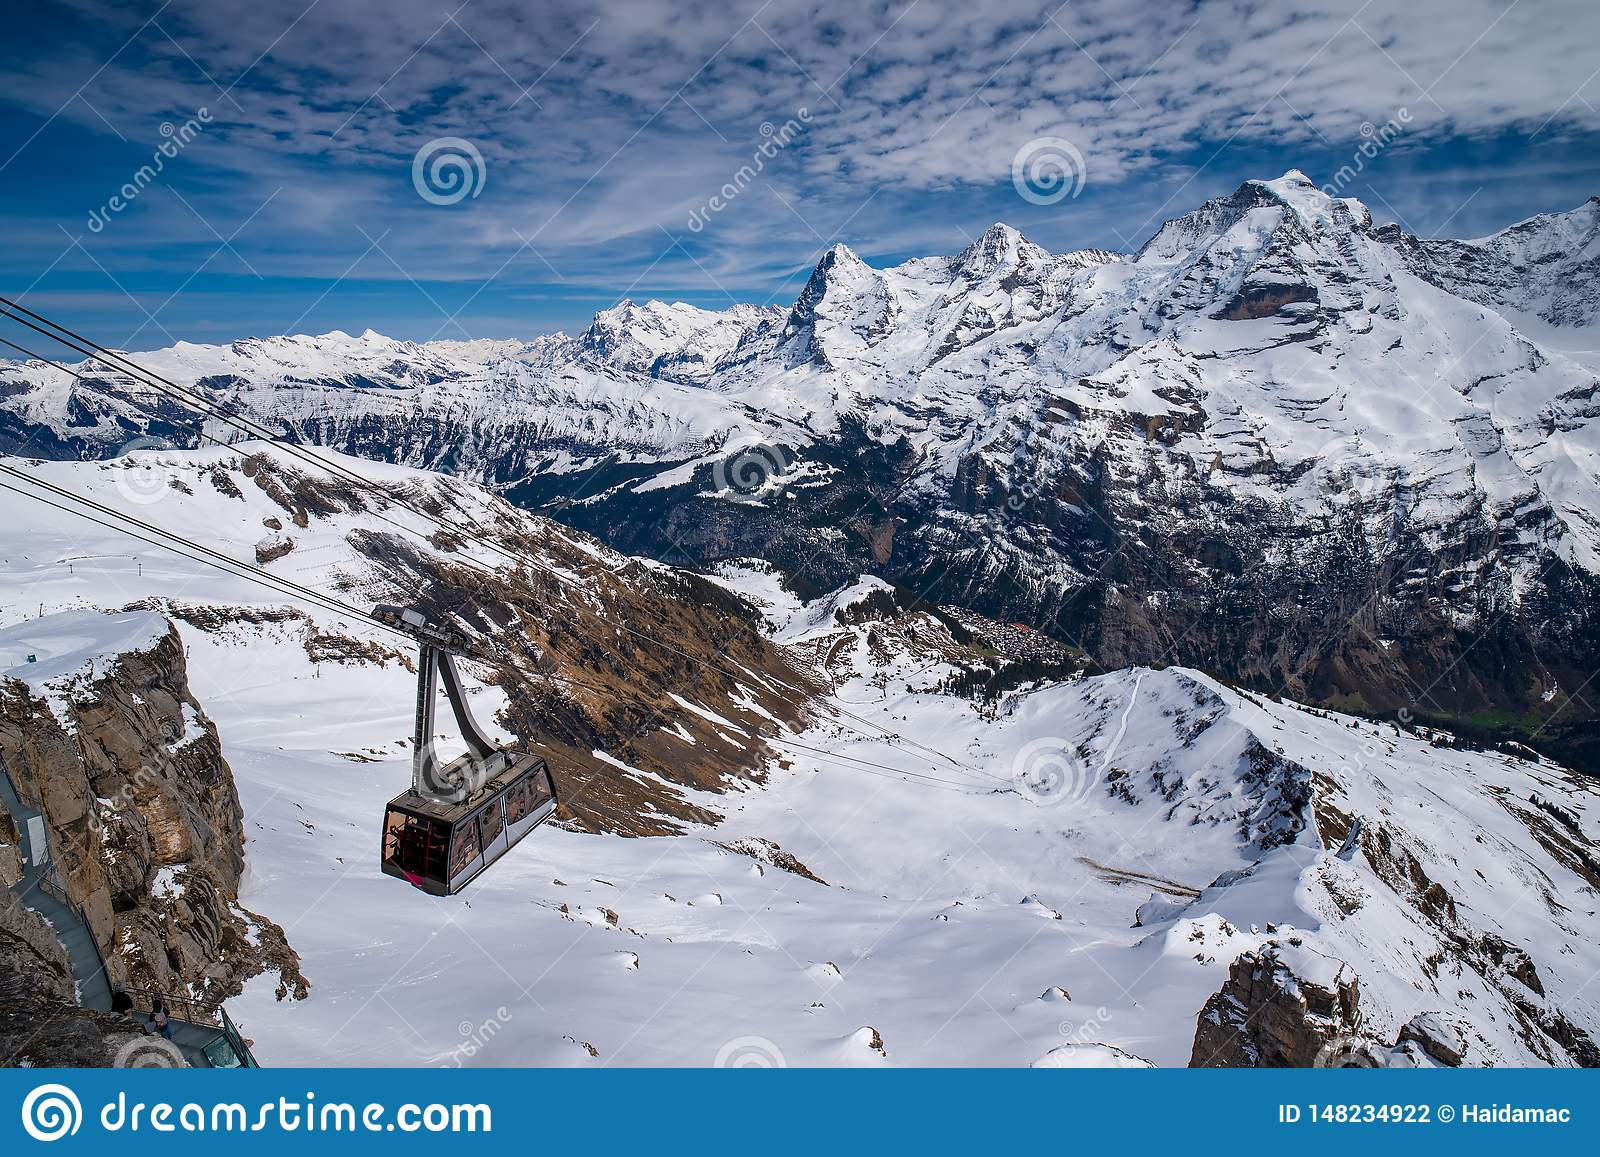 Cable car against breathtaking panoramic view of famous peaks Eiger, Monch and Jungfrau in Swiss Alps, Switzerland